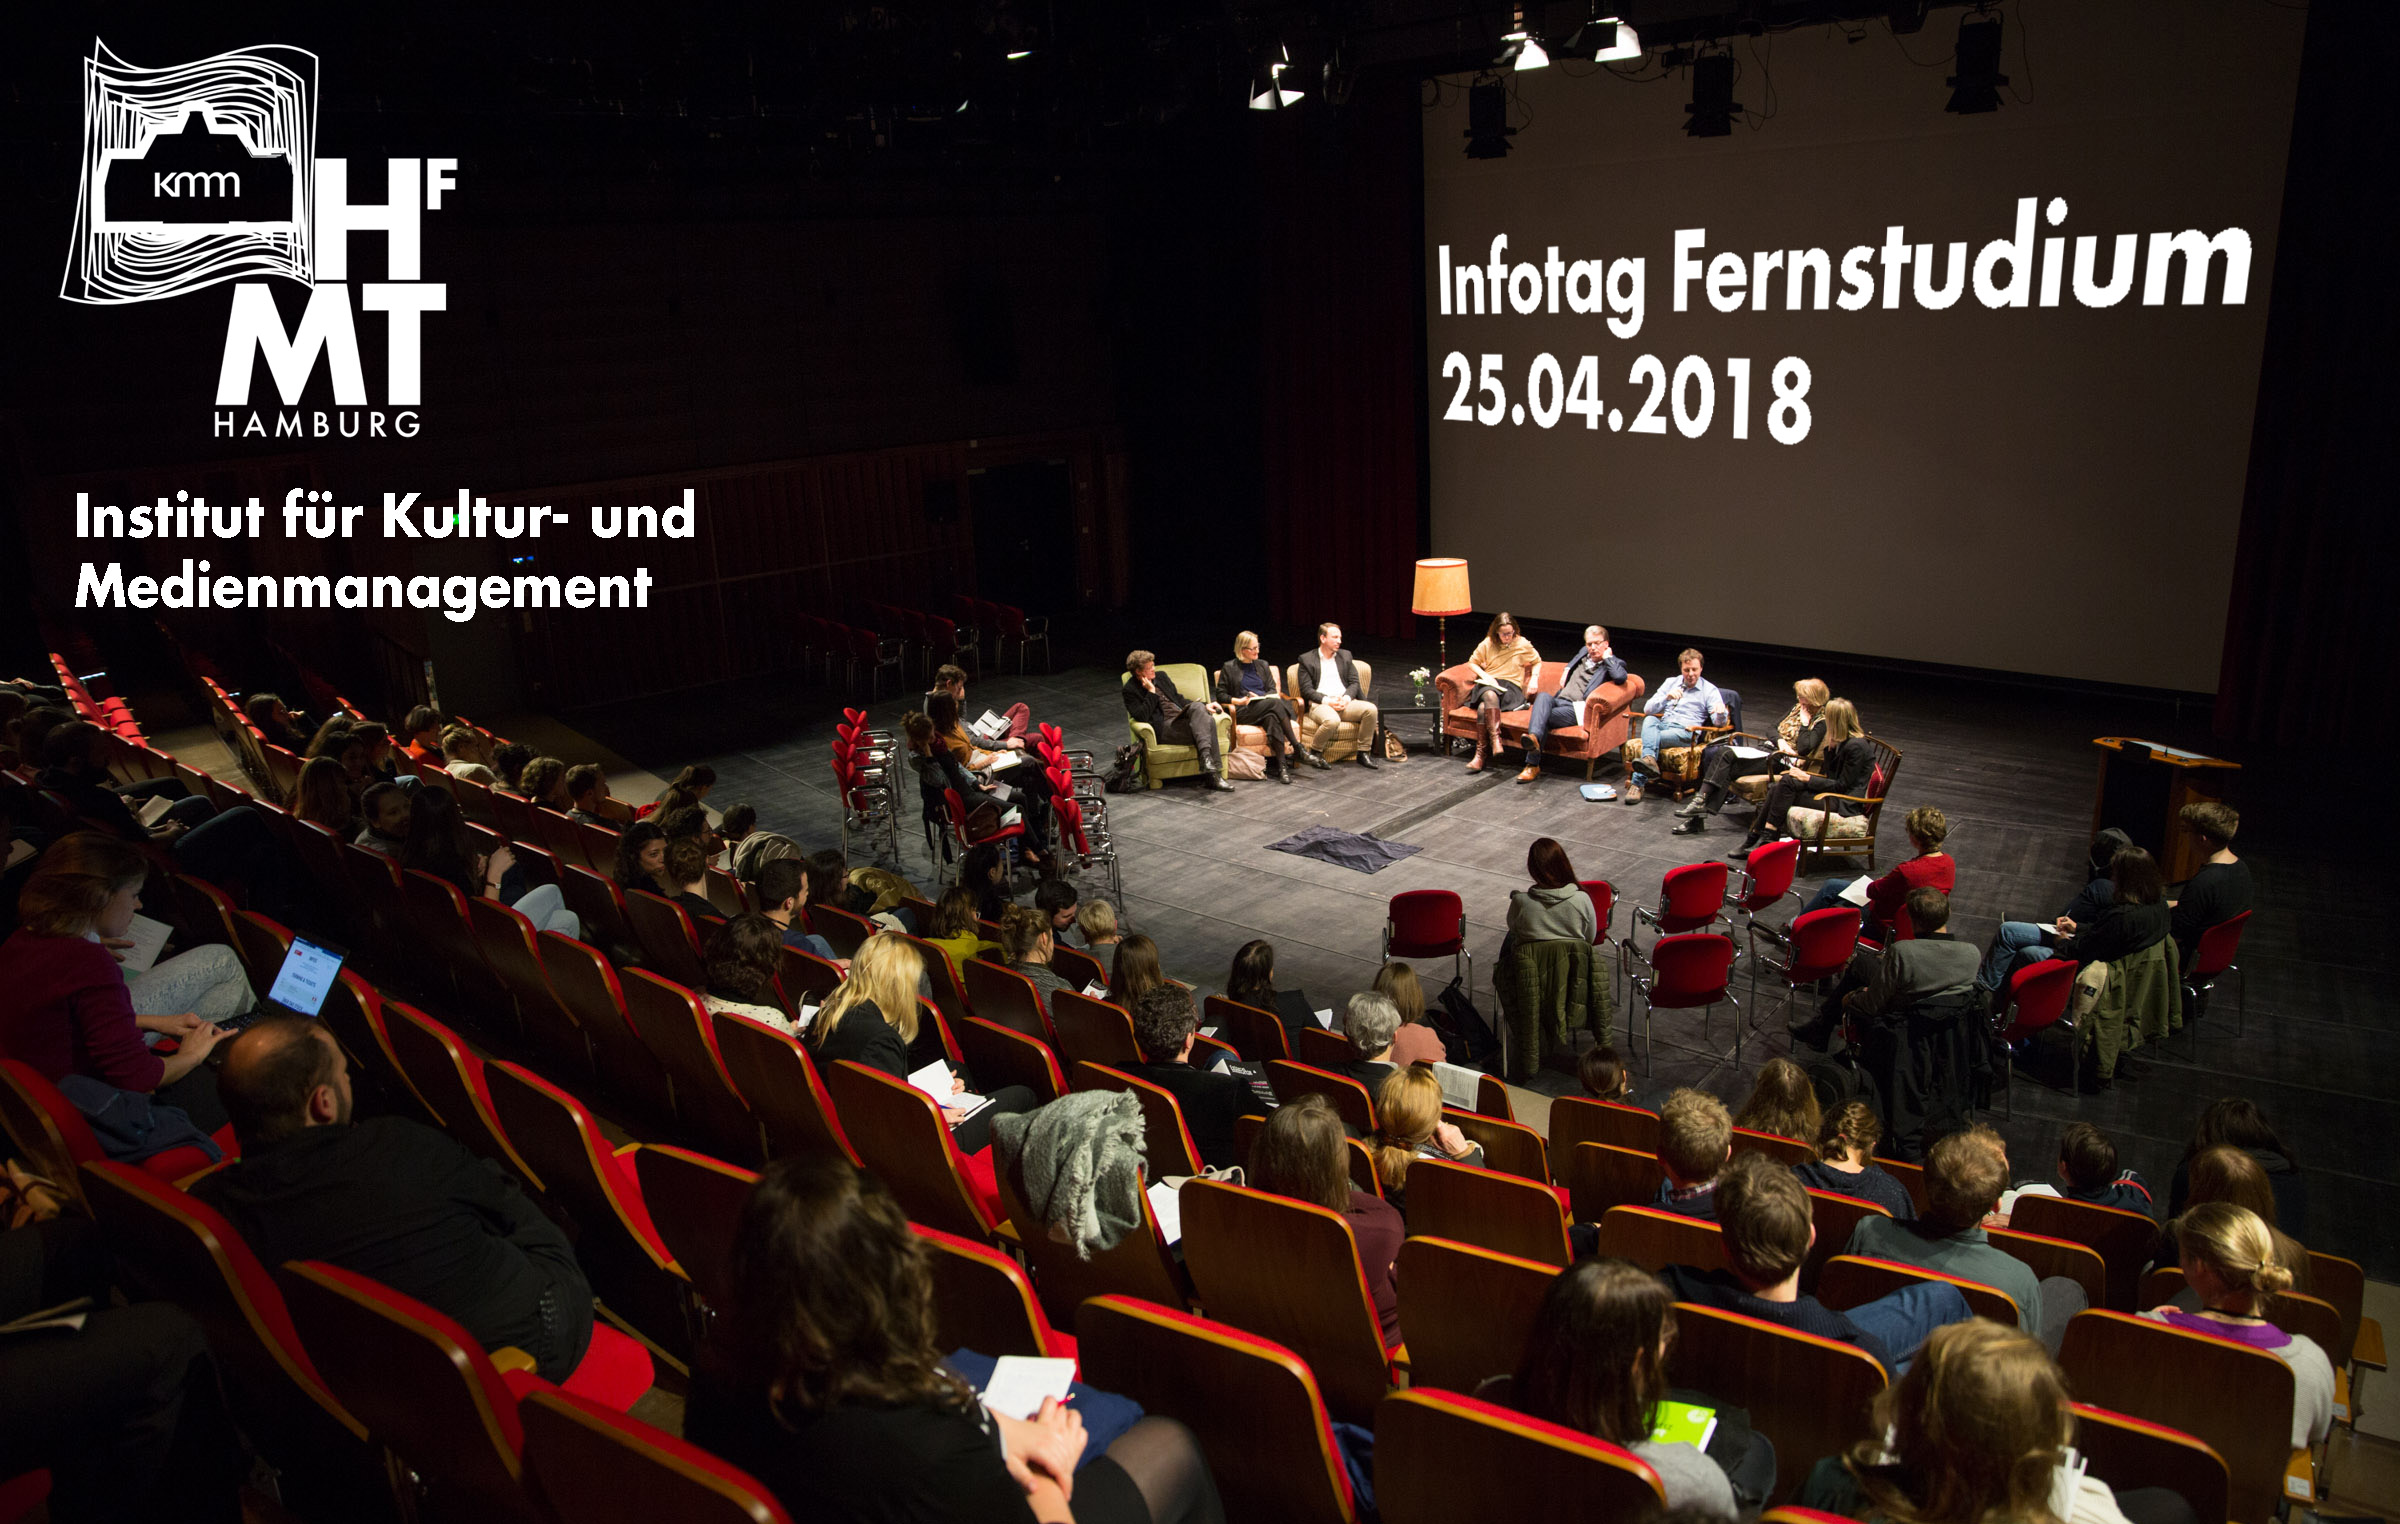 Infotag Fernstudium am Institut KMM